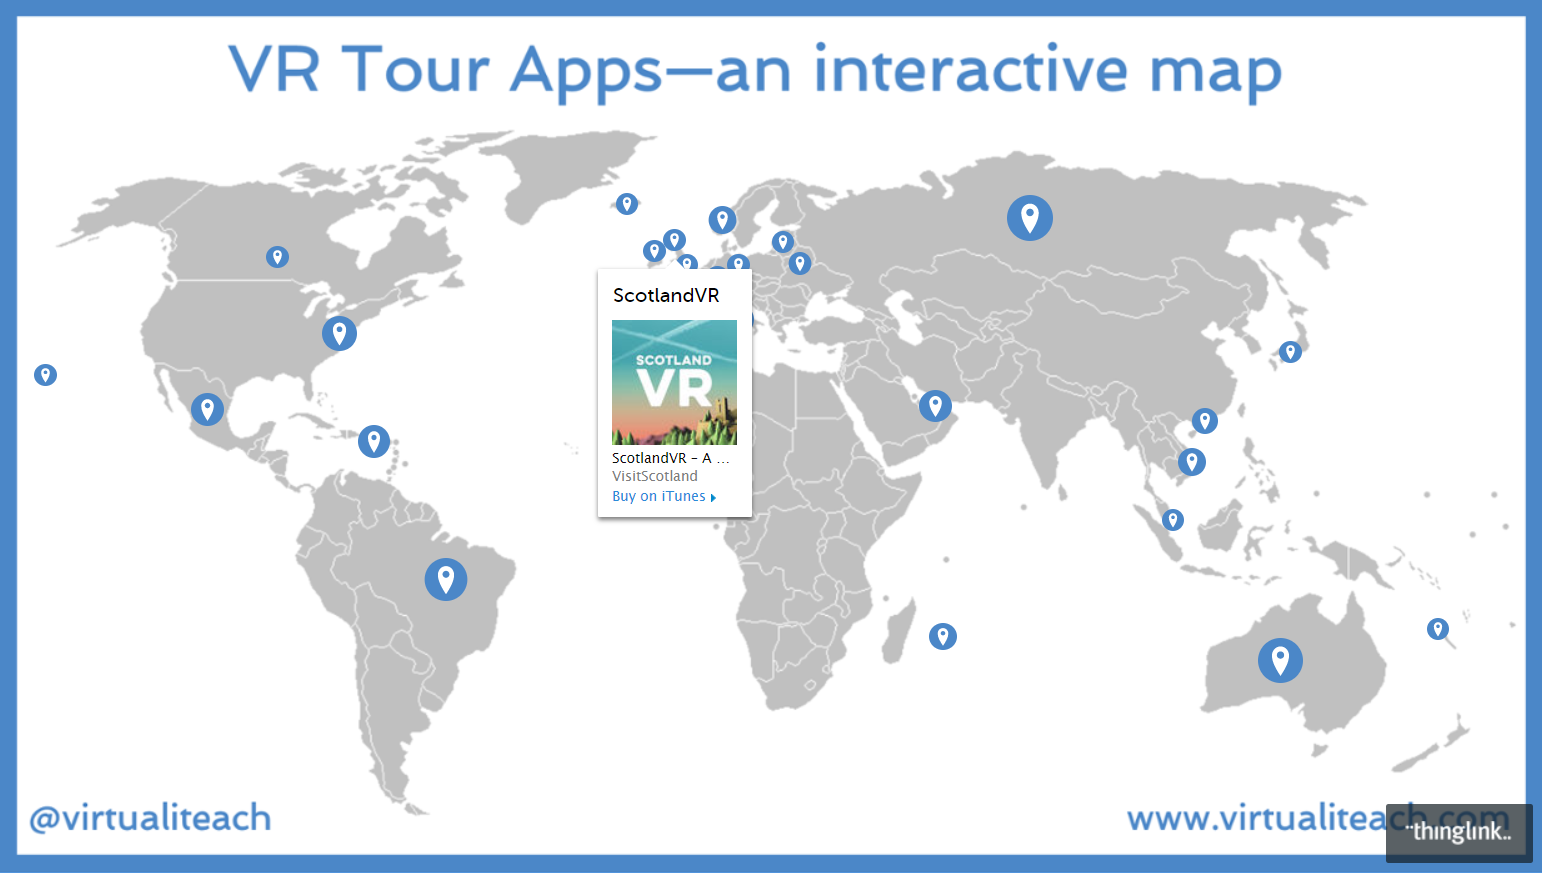 Vr tour apps an interactive map home virtualiteach gumiabroncs Image collections